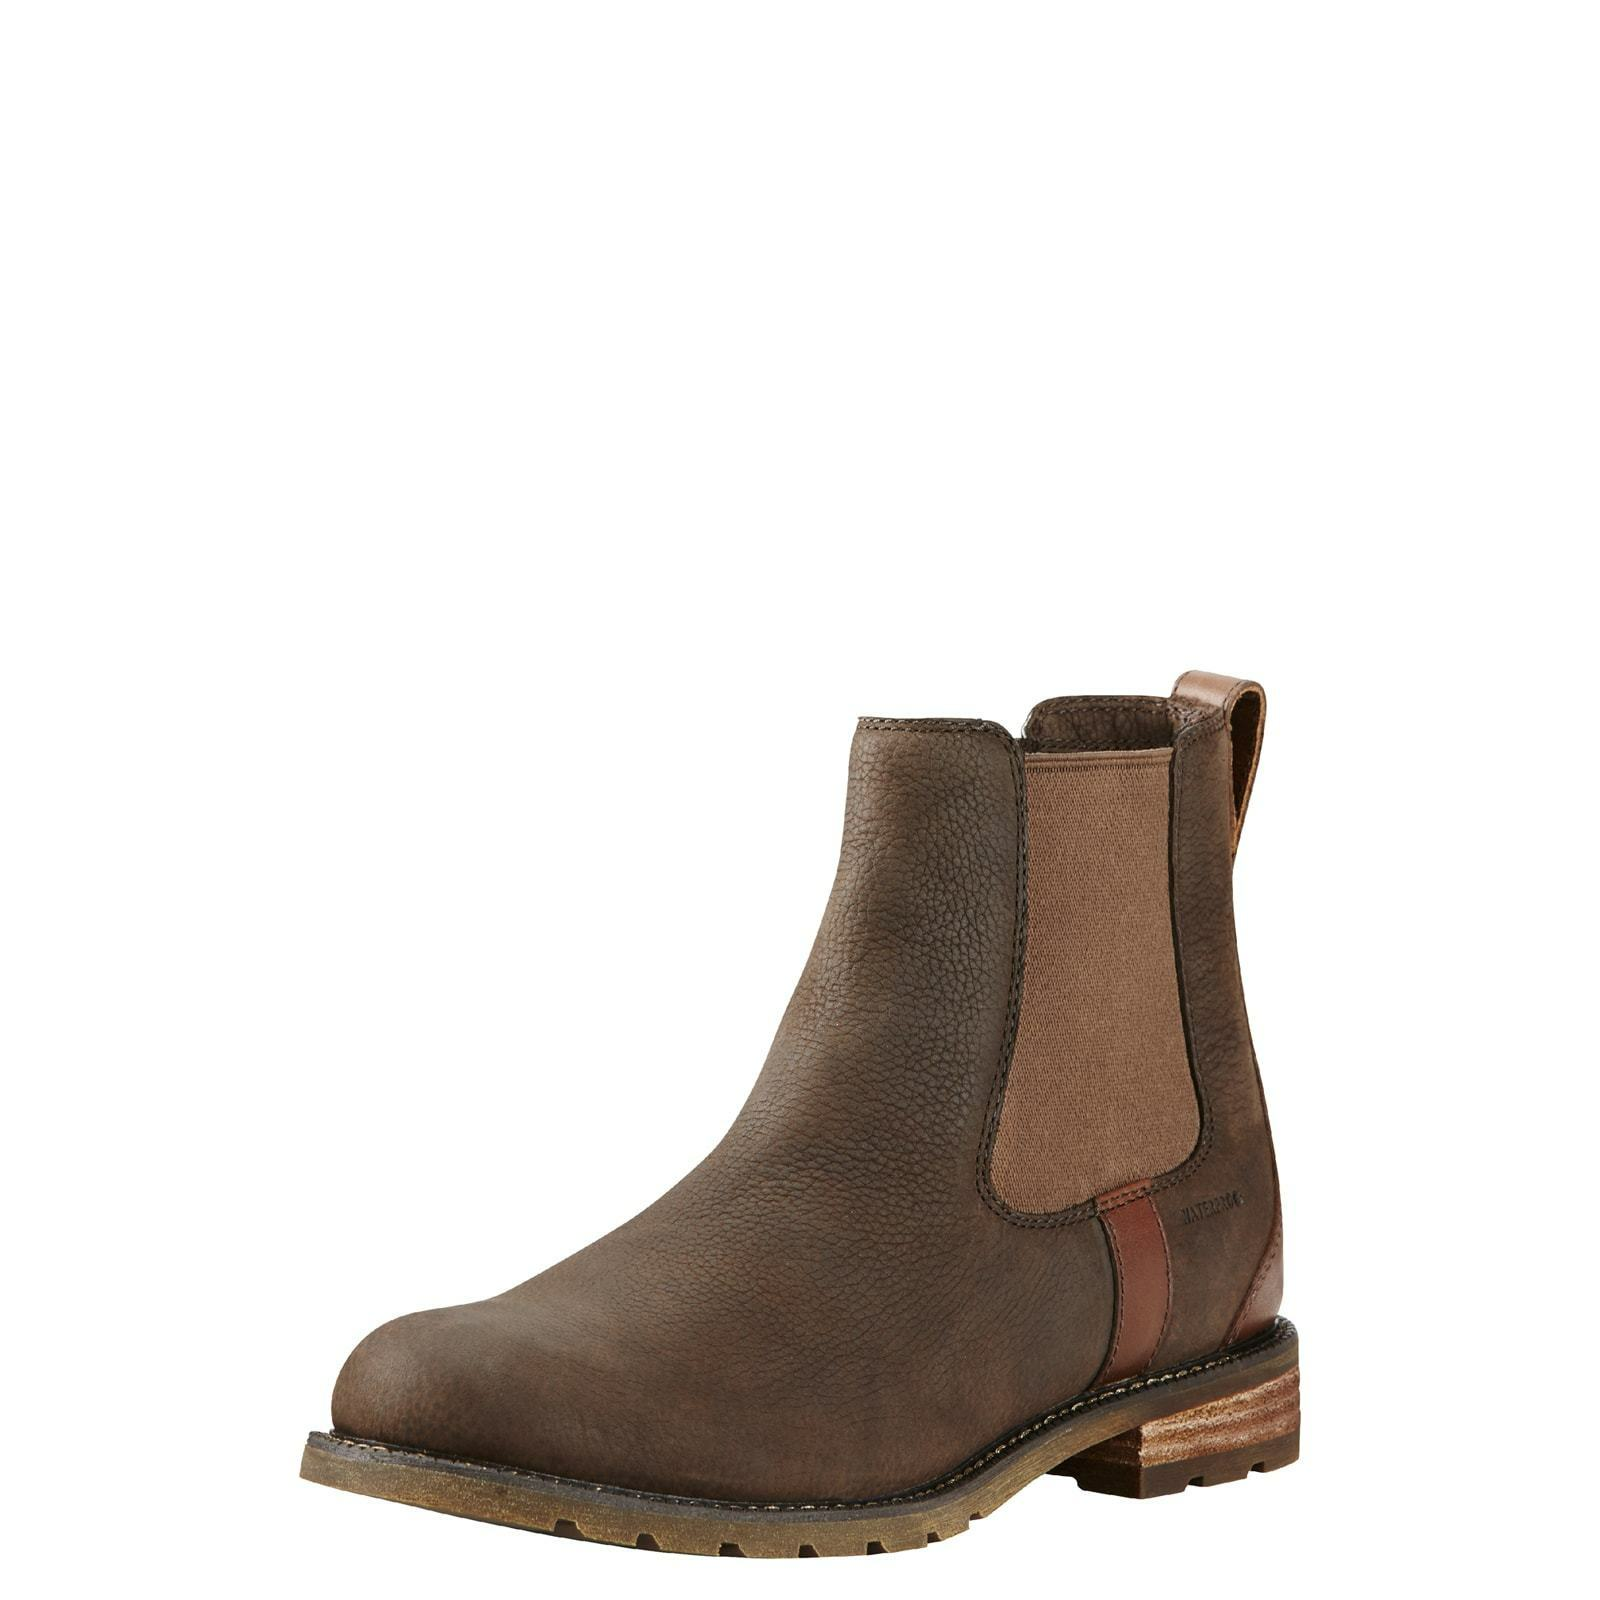 Ariat Wexford H2O - Java or Rustic Brown - 2 Colours